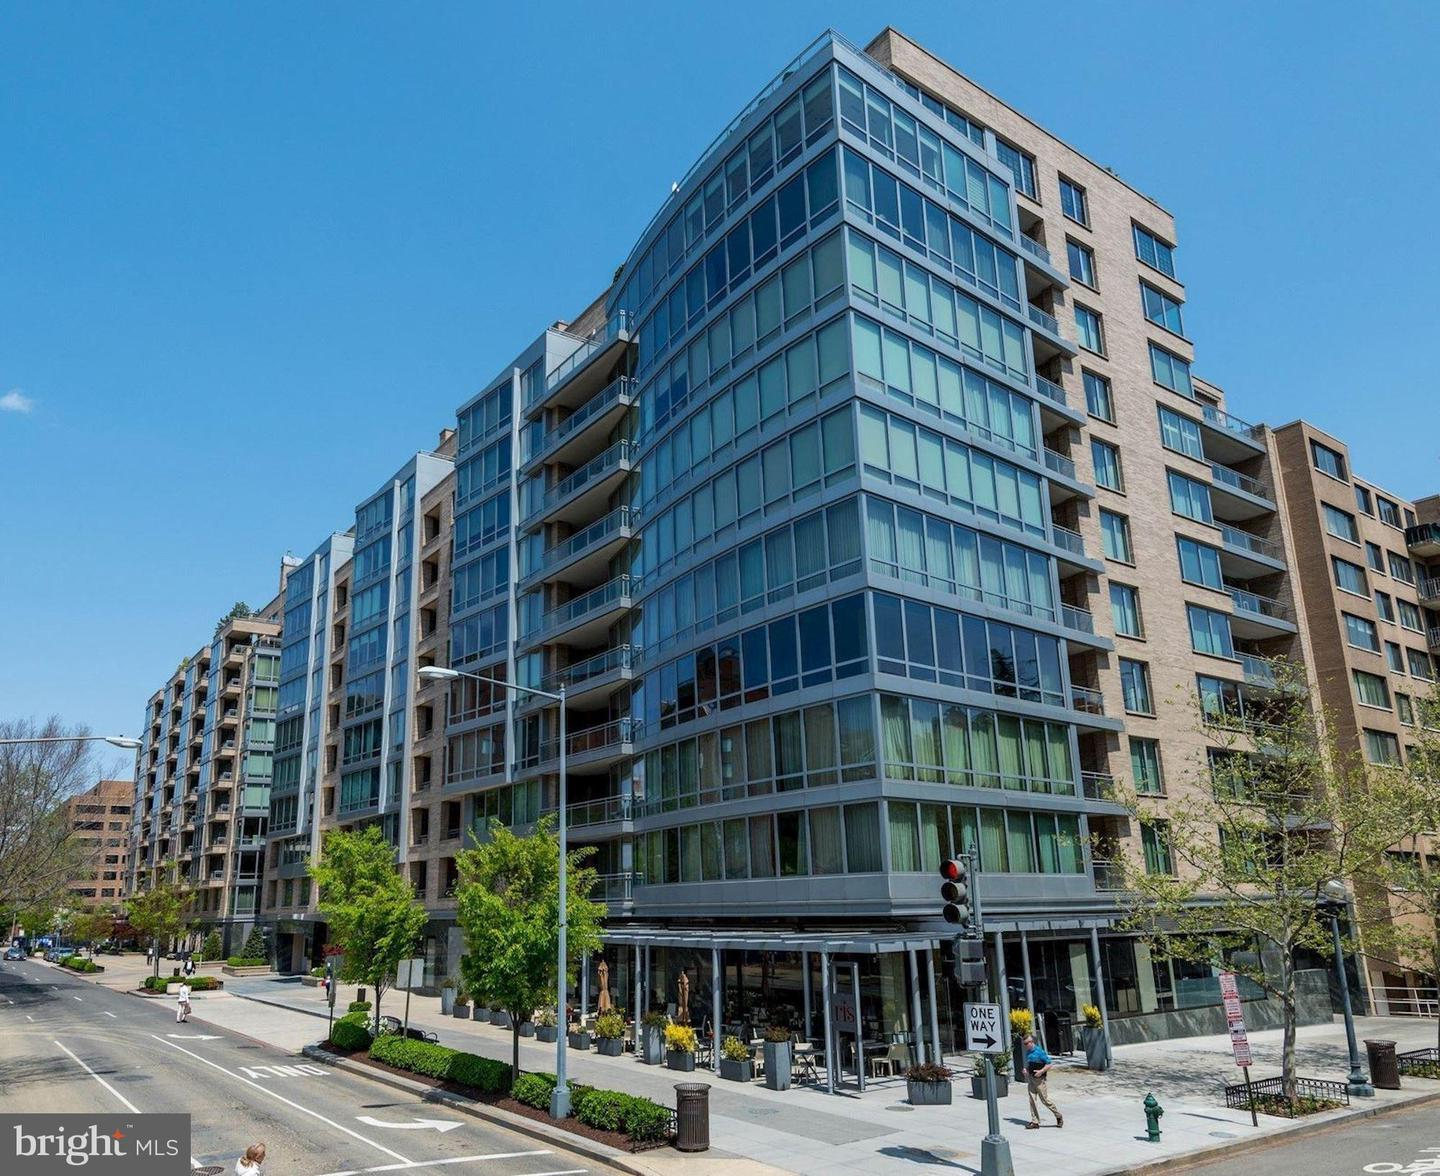 Single Family Home for Sale at 1111 23rd St NW #3f Washington, District Of Columbia 20037 United States